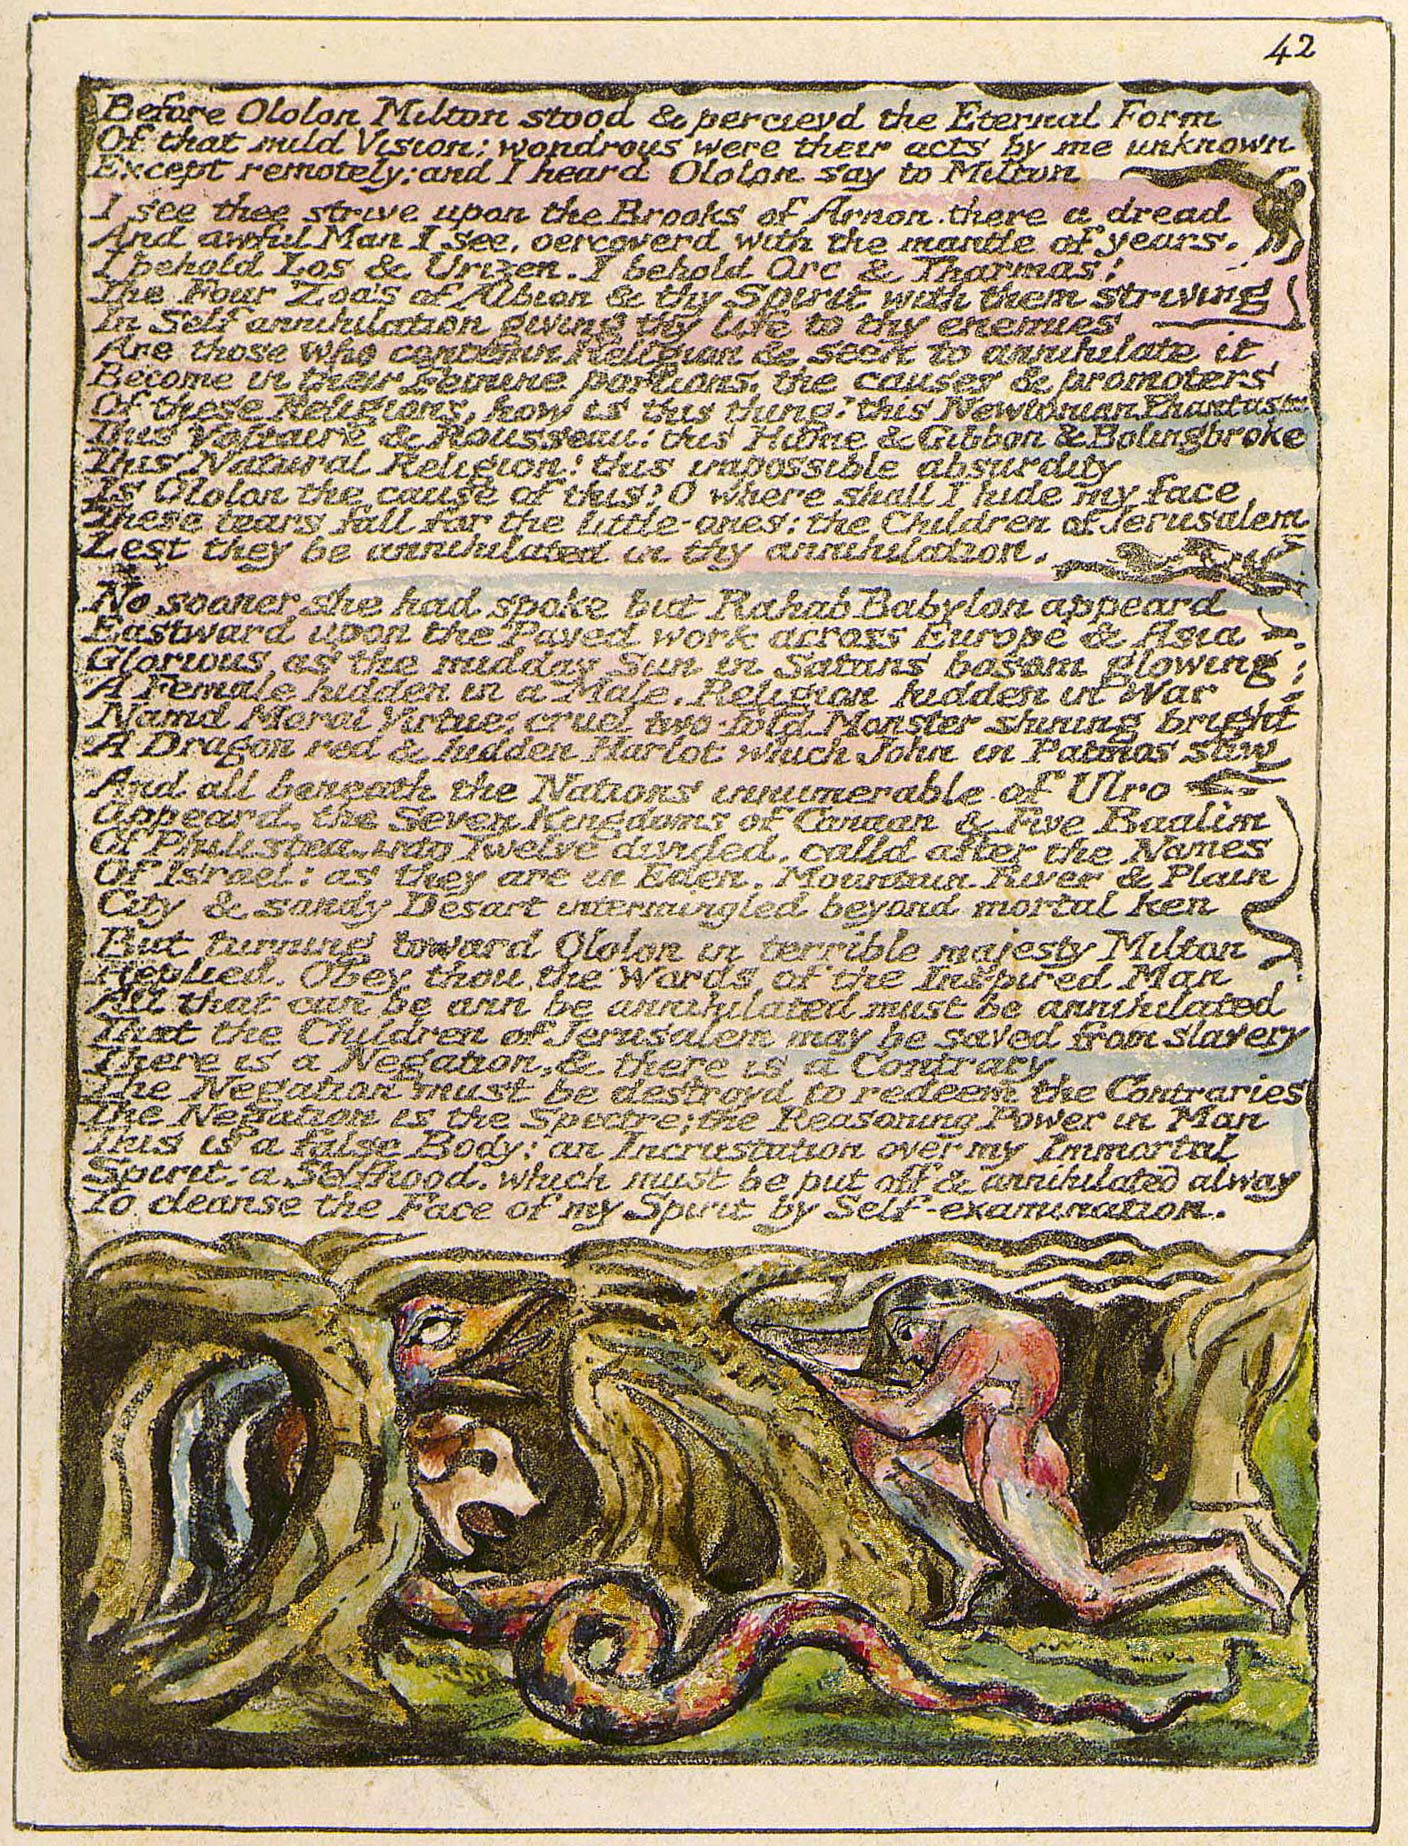 william blakes poem london Alterations to the draft of william blake's 'london' show the poet exploring poverty, revolution, reason and the power of the imagination dr linda freedman examines the manuscript, to discover the meanings behind this iconic poem.